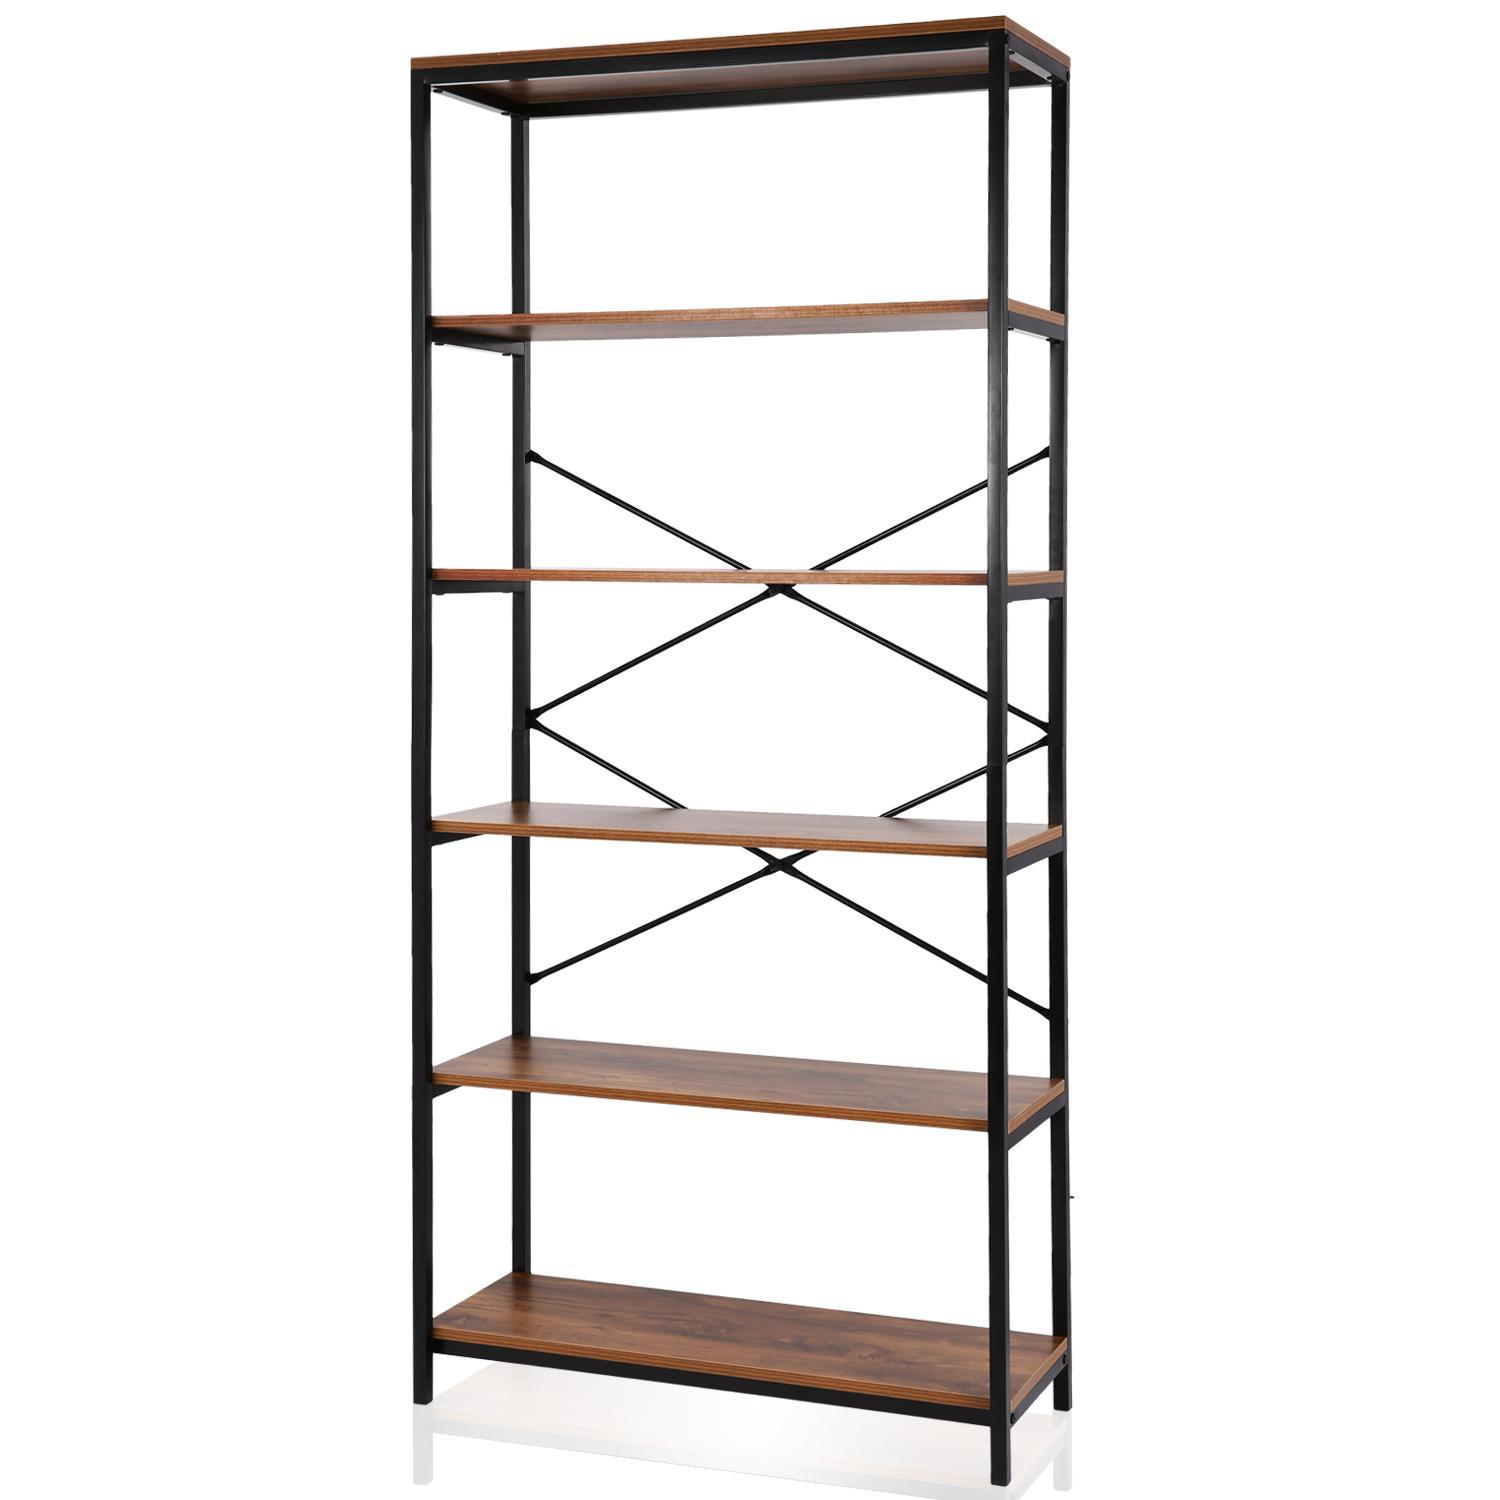 5-Shelf Vintage Industrial Bookcase, Wood and Metal Rustic Open Bookshelf,   32 '' x 12'' x 71''Kimimart